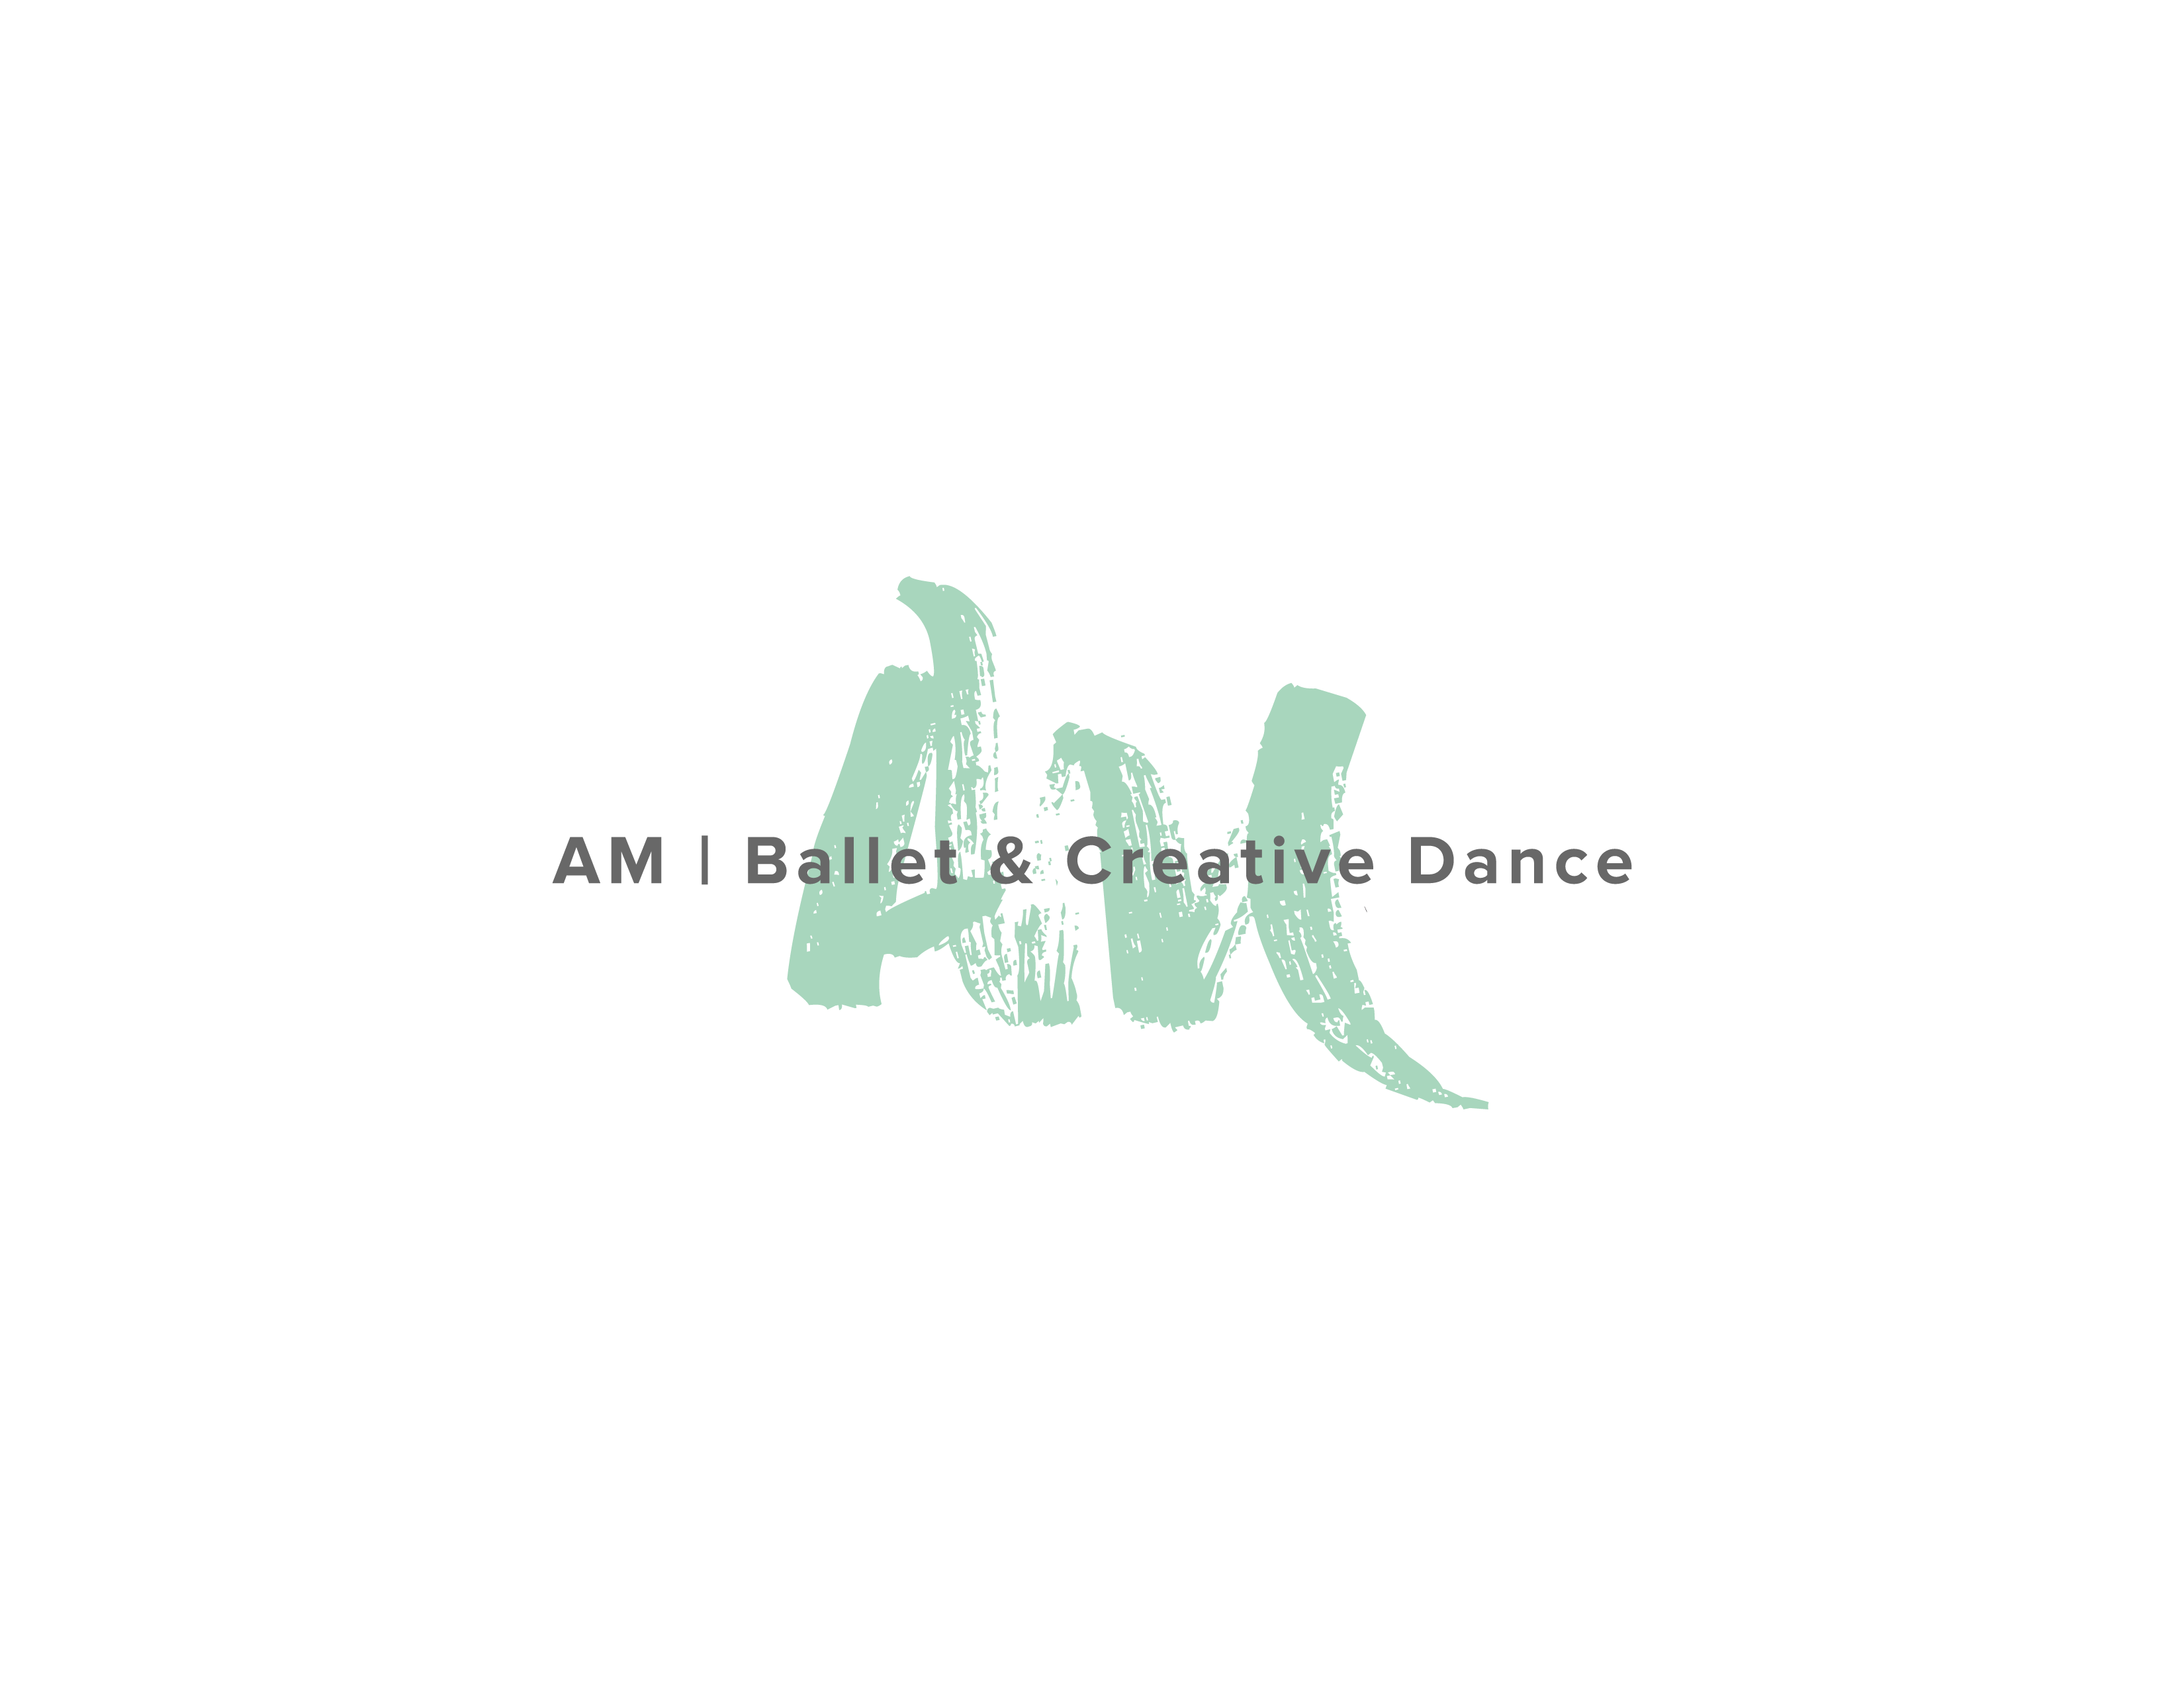 AM Creative Dance Logo